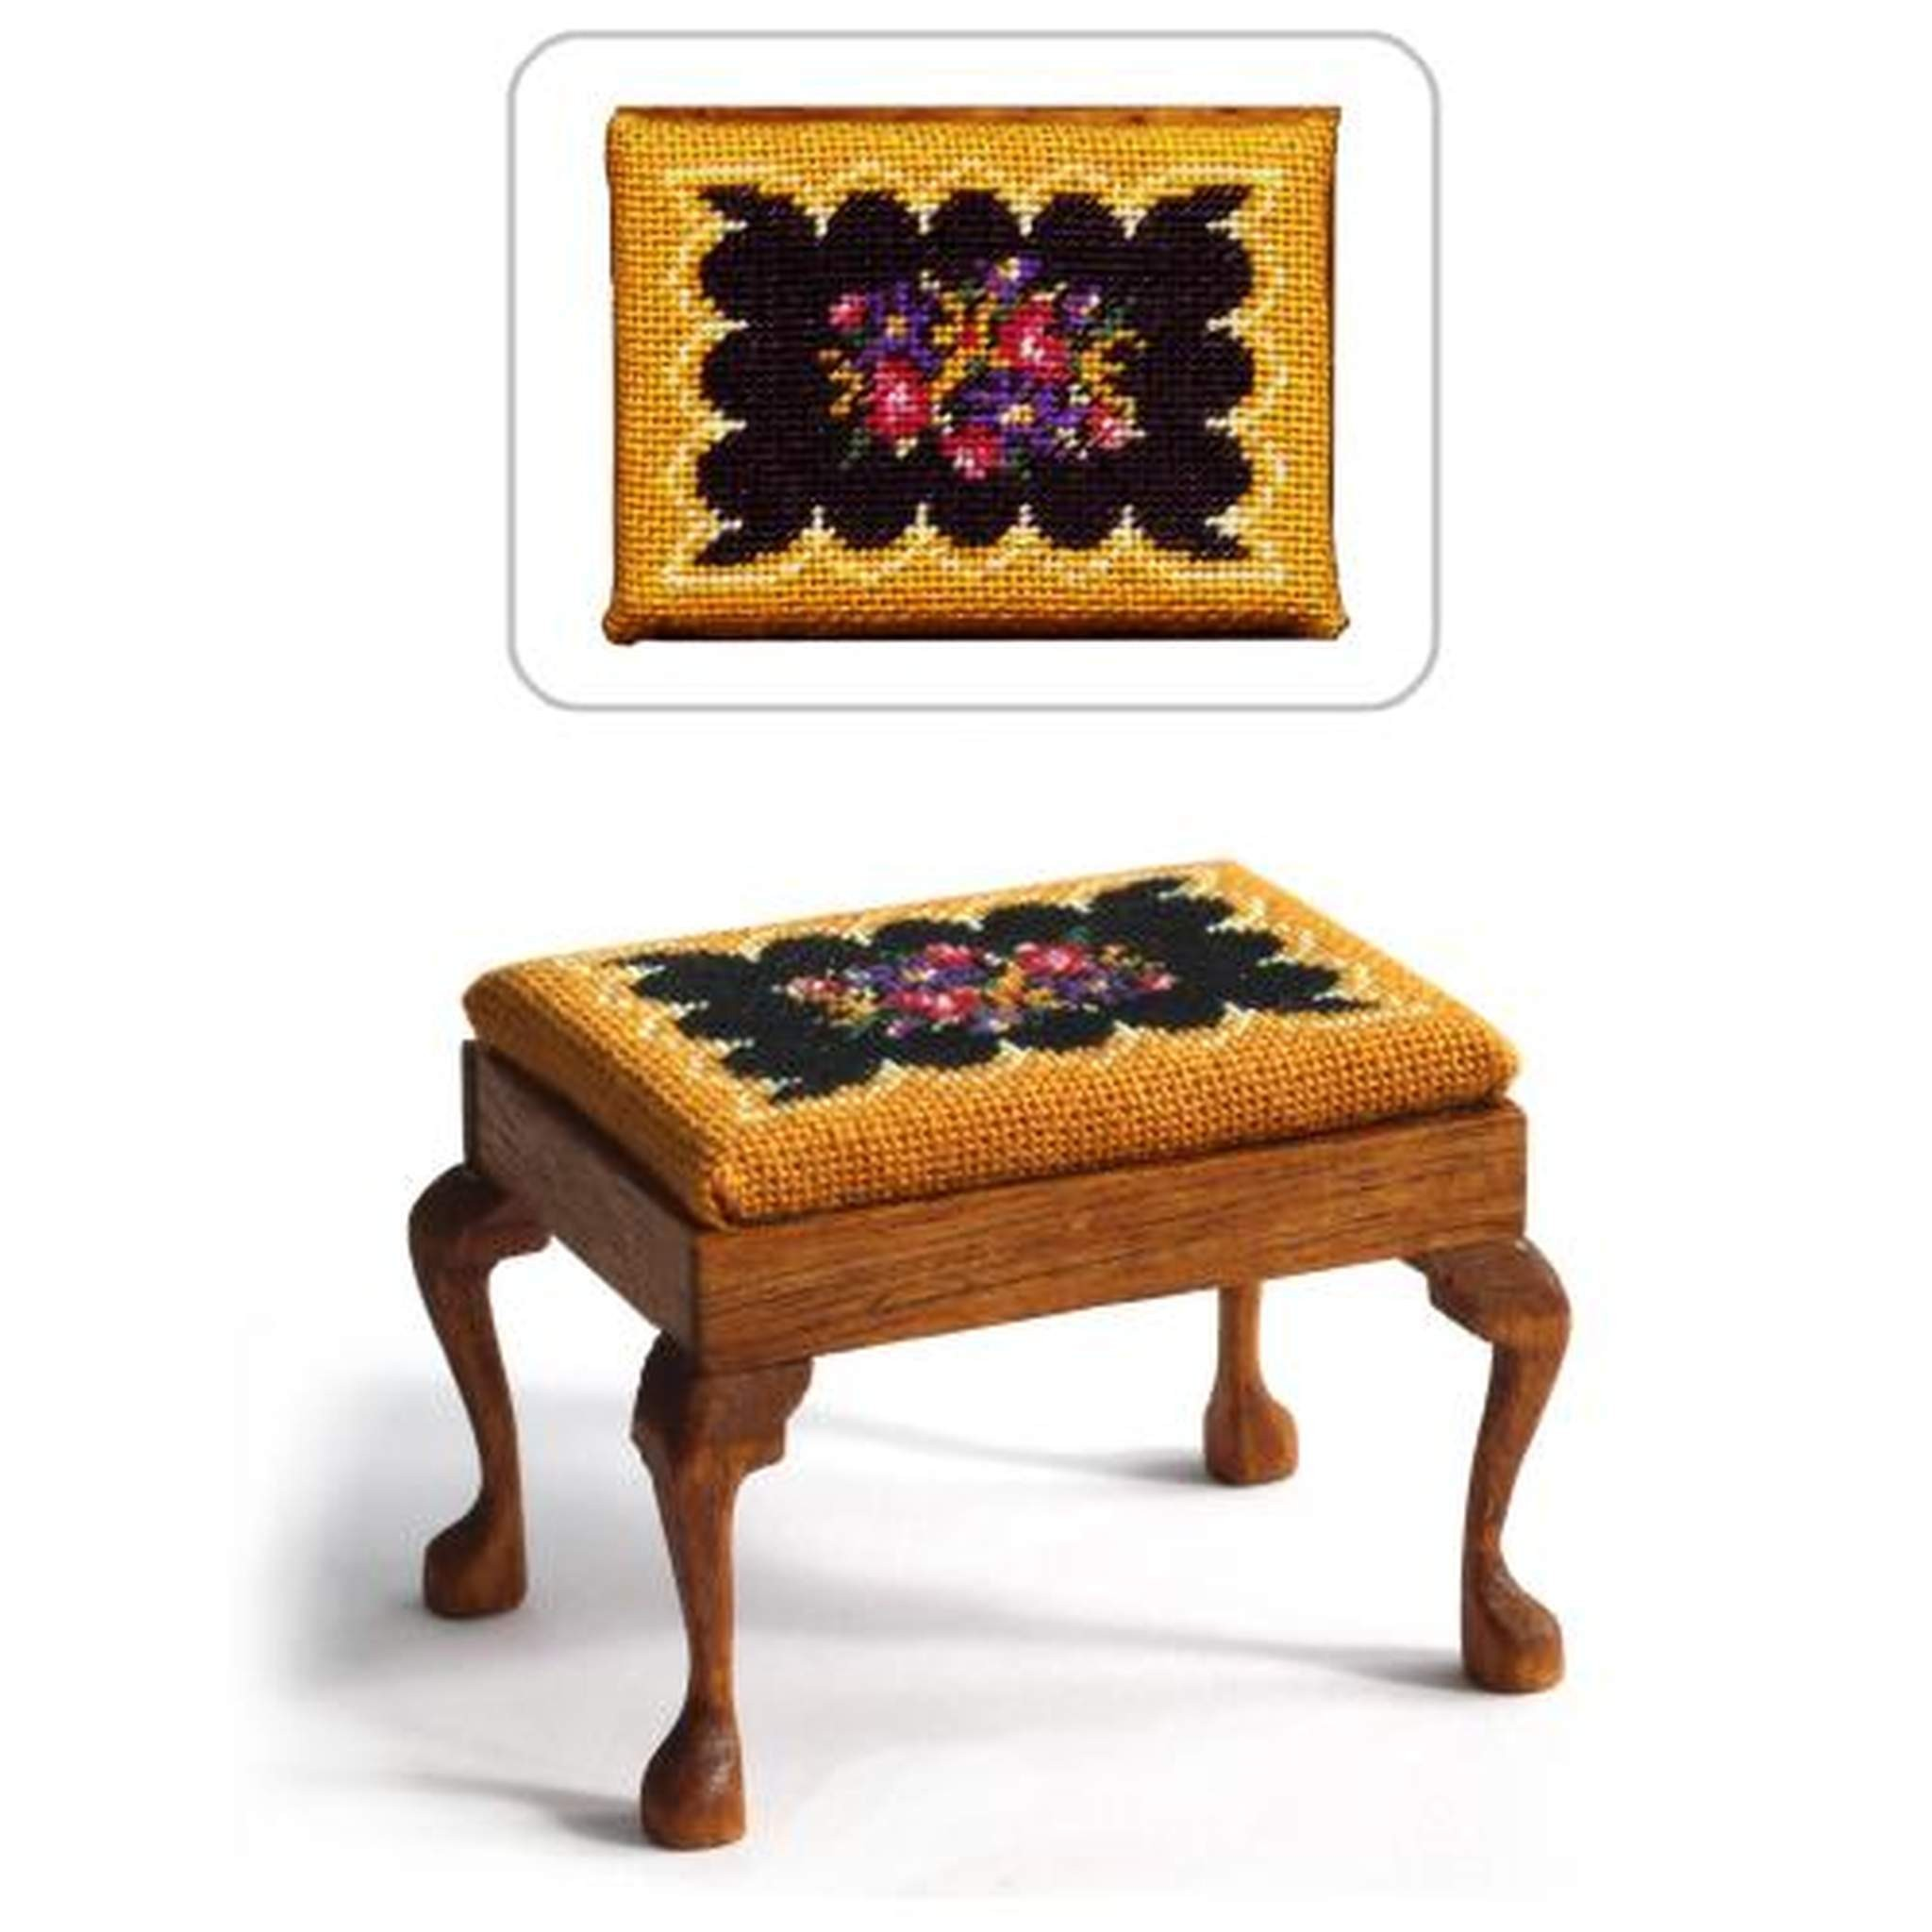 Janet granger designs berlin woolwork dolls house needlepoint rectangular stool kit